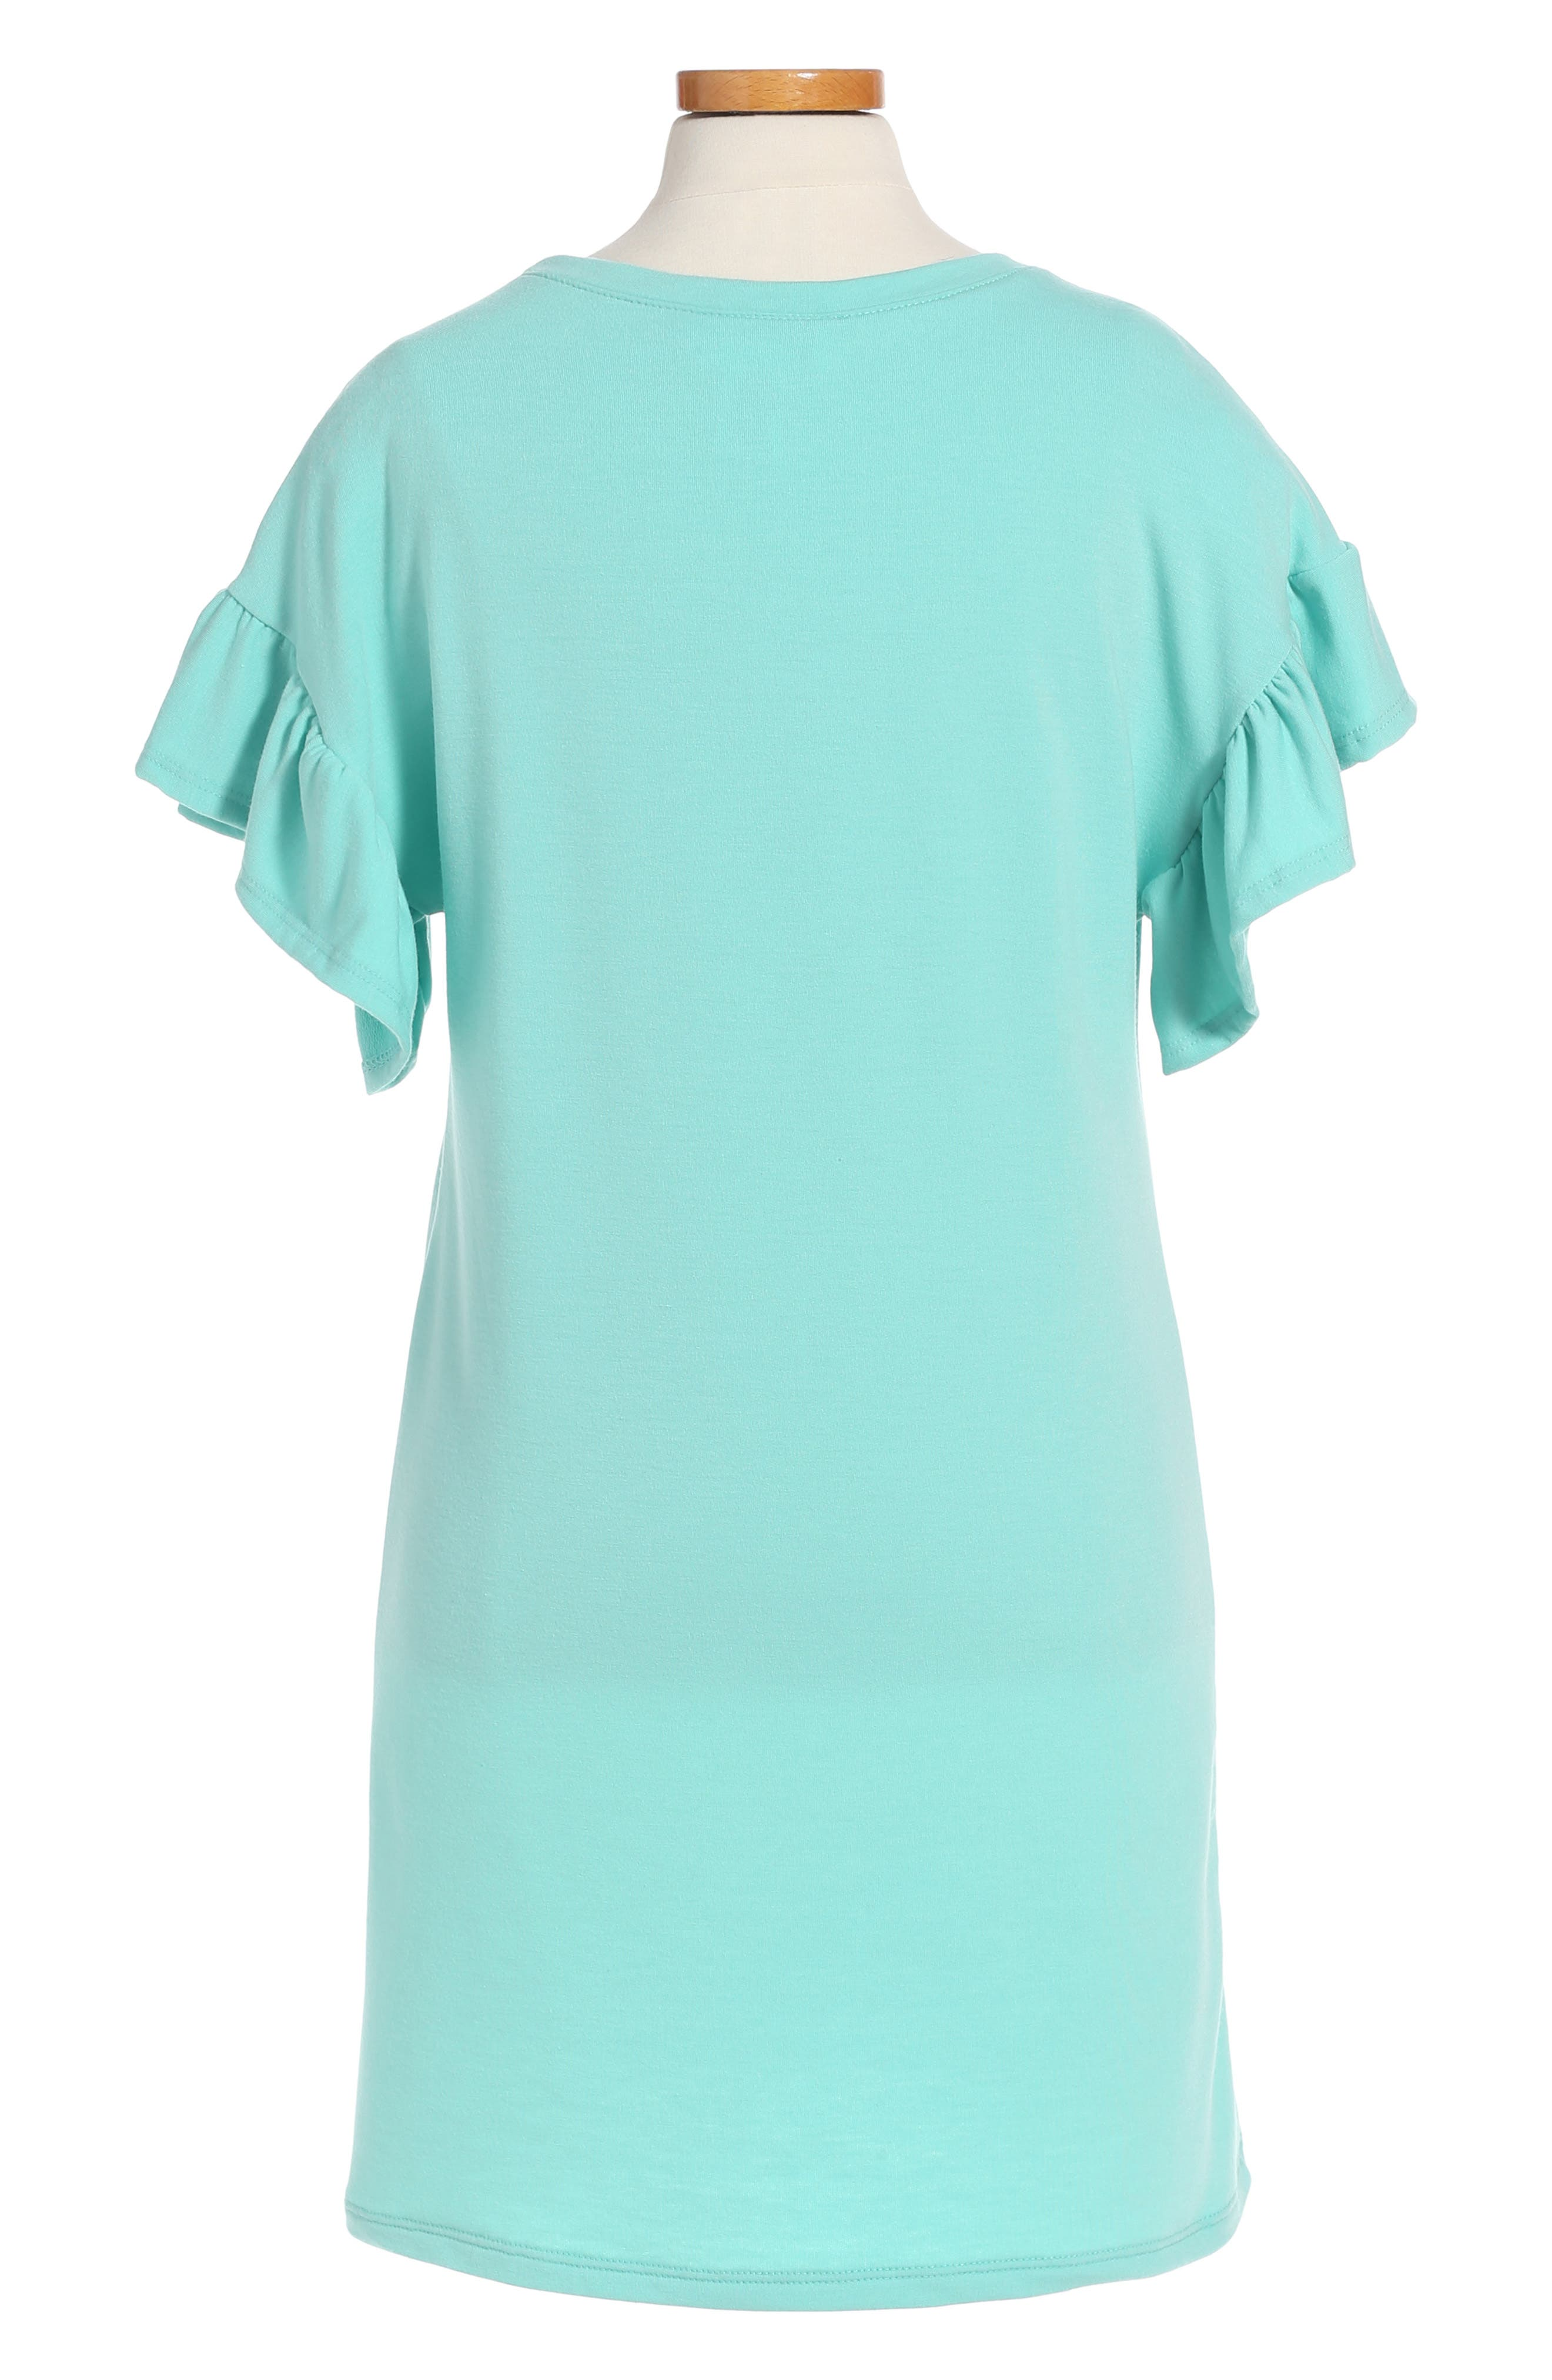 Alternate Image 2  - Cotton Emporium Ruffle Sleeve Dress (Big Girls)